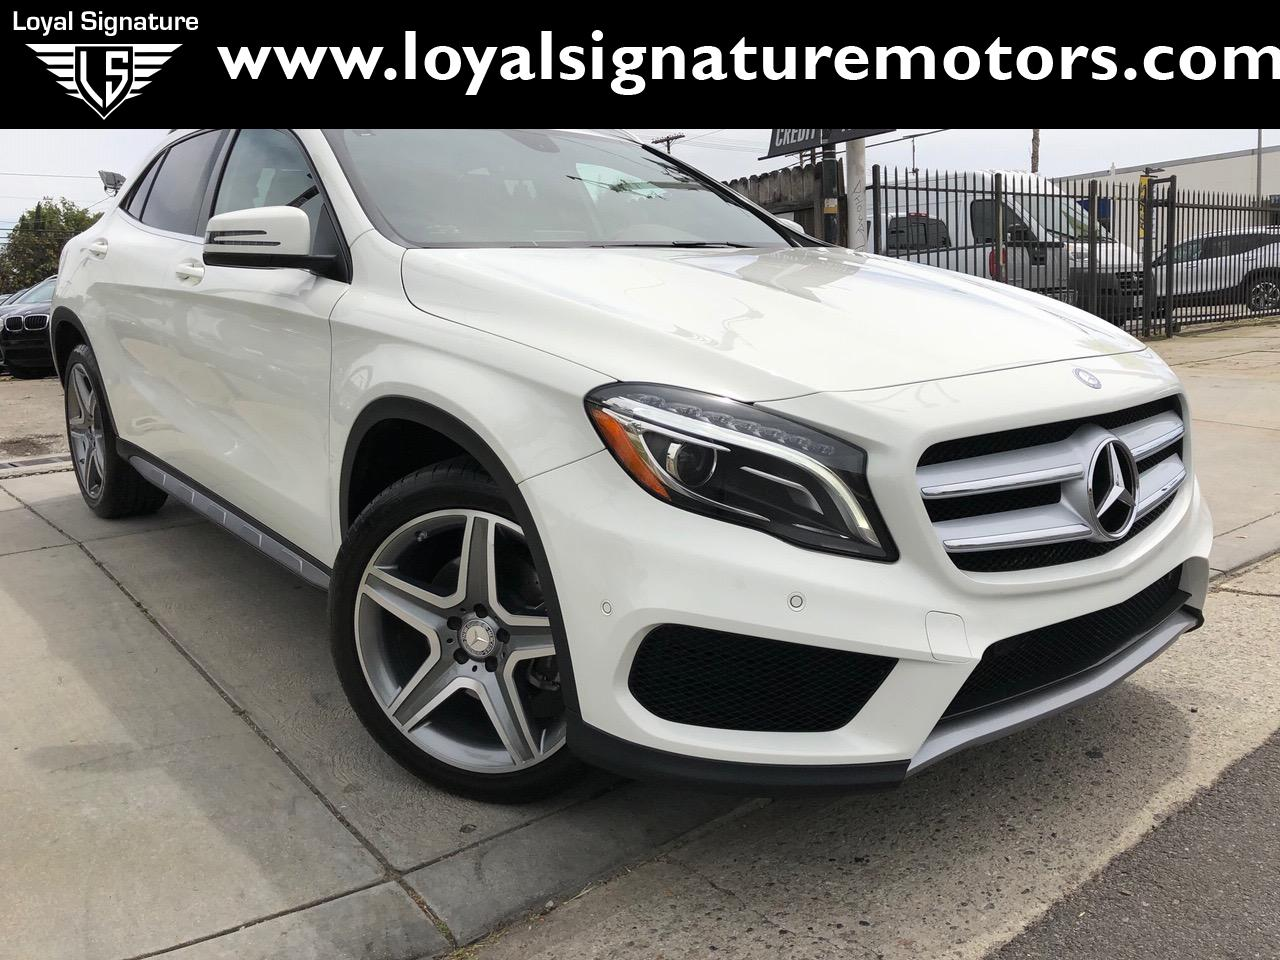 Used 2015 Mercedes-Benz GLA GLA 250 4MATIC | Van Nuys, CA